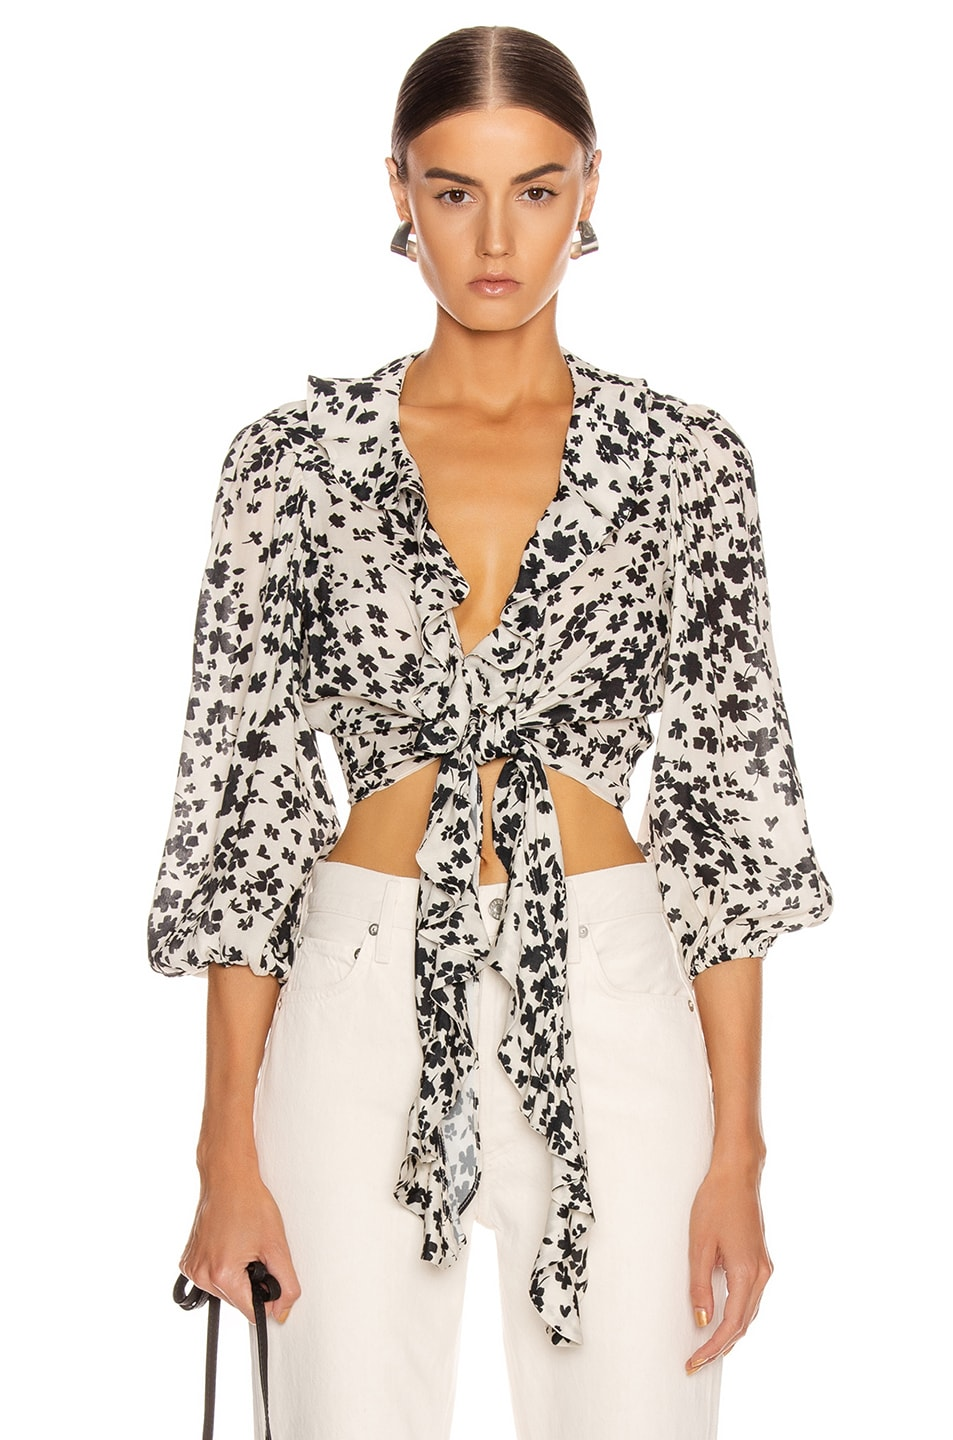 Image 1 of ICONS Objects of Devotion The Doherty Top in Ivory Black Floral